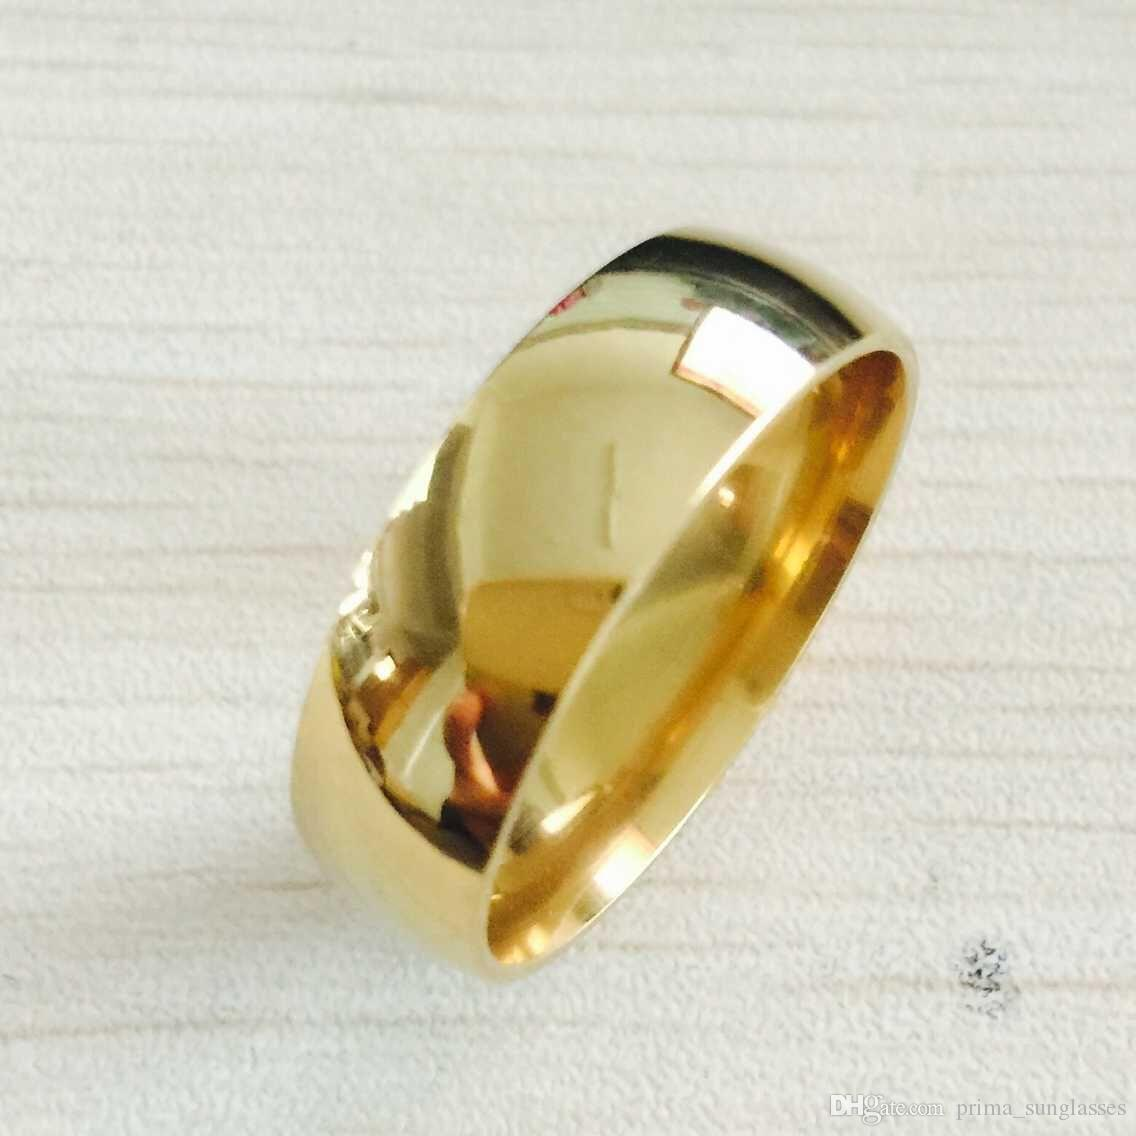 h band rings id bands for motif hermes ring sale at j gold wide yellow jewelry l